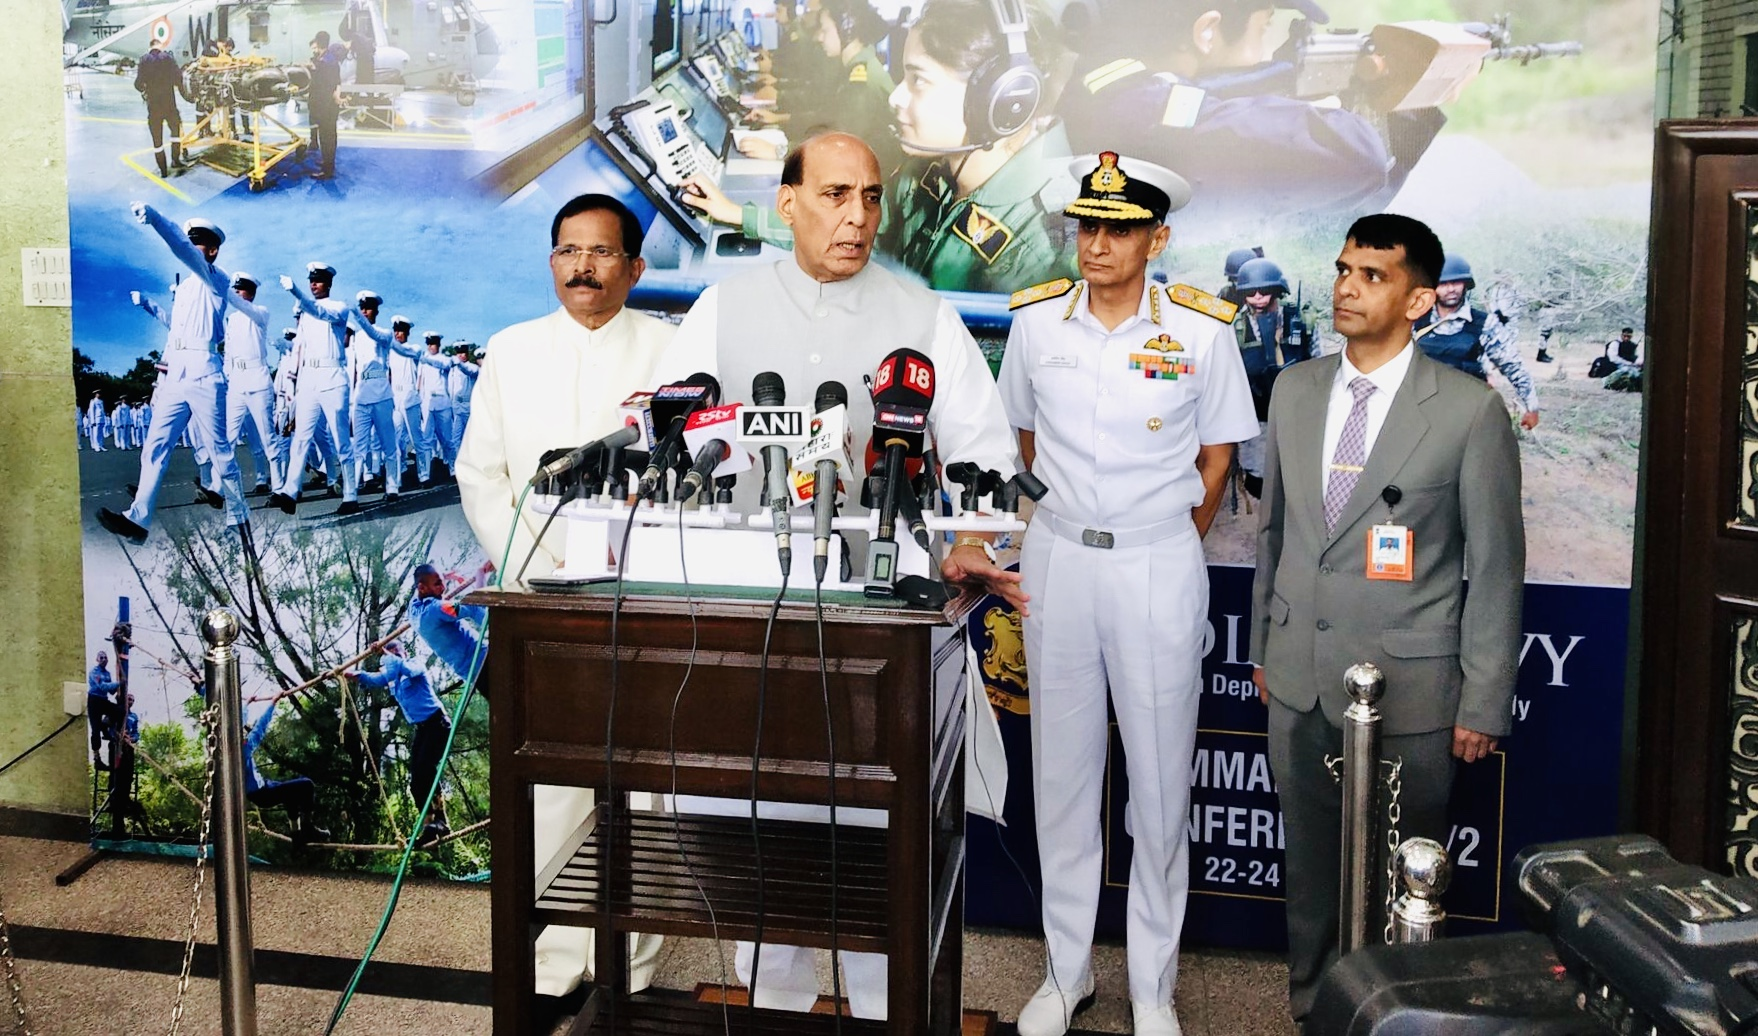 Indian armed forces capable of giving befitting reply: Rajnath Singh